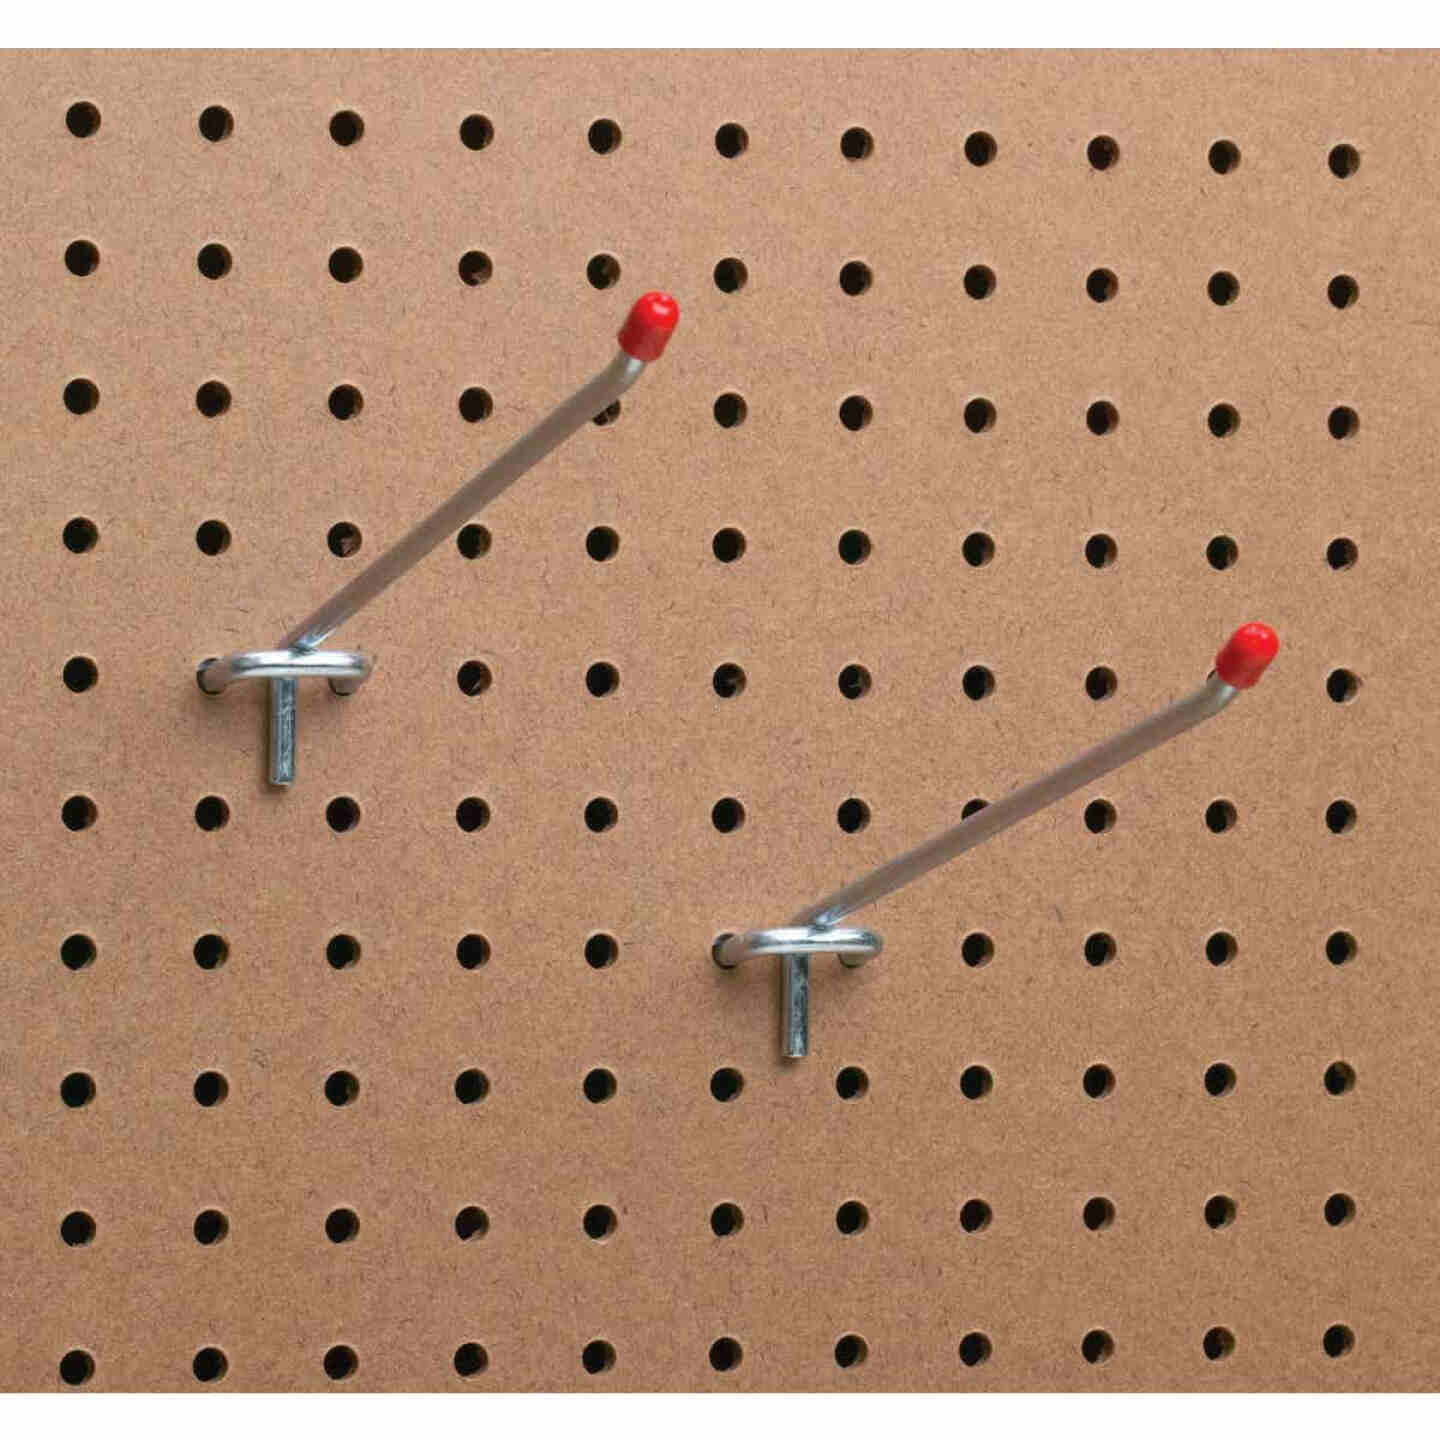 8 In. Medium Duty Safety Tip Straight Pegboard Hook (2-Count) Image 3